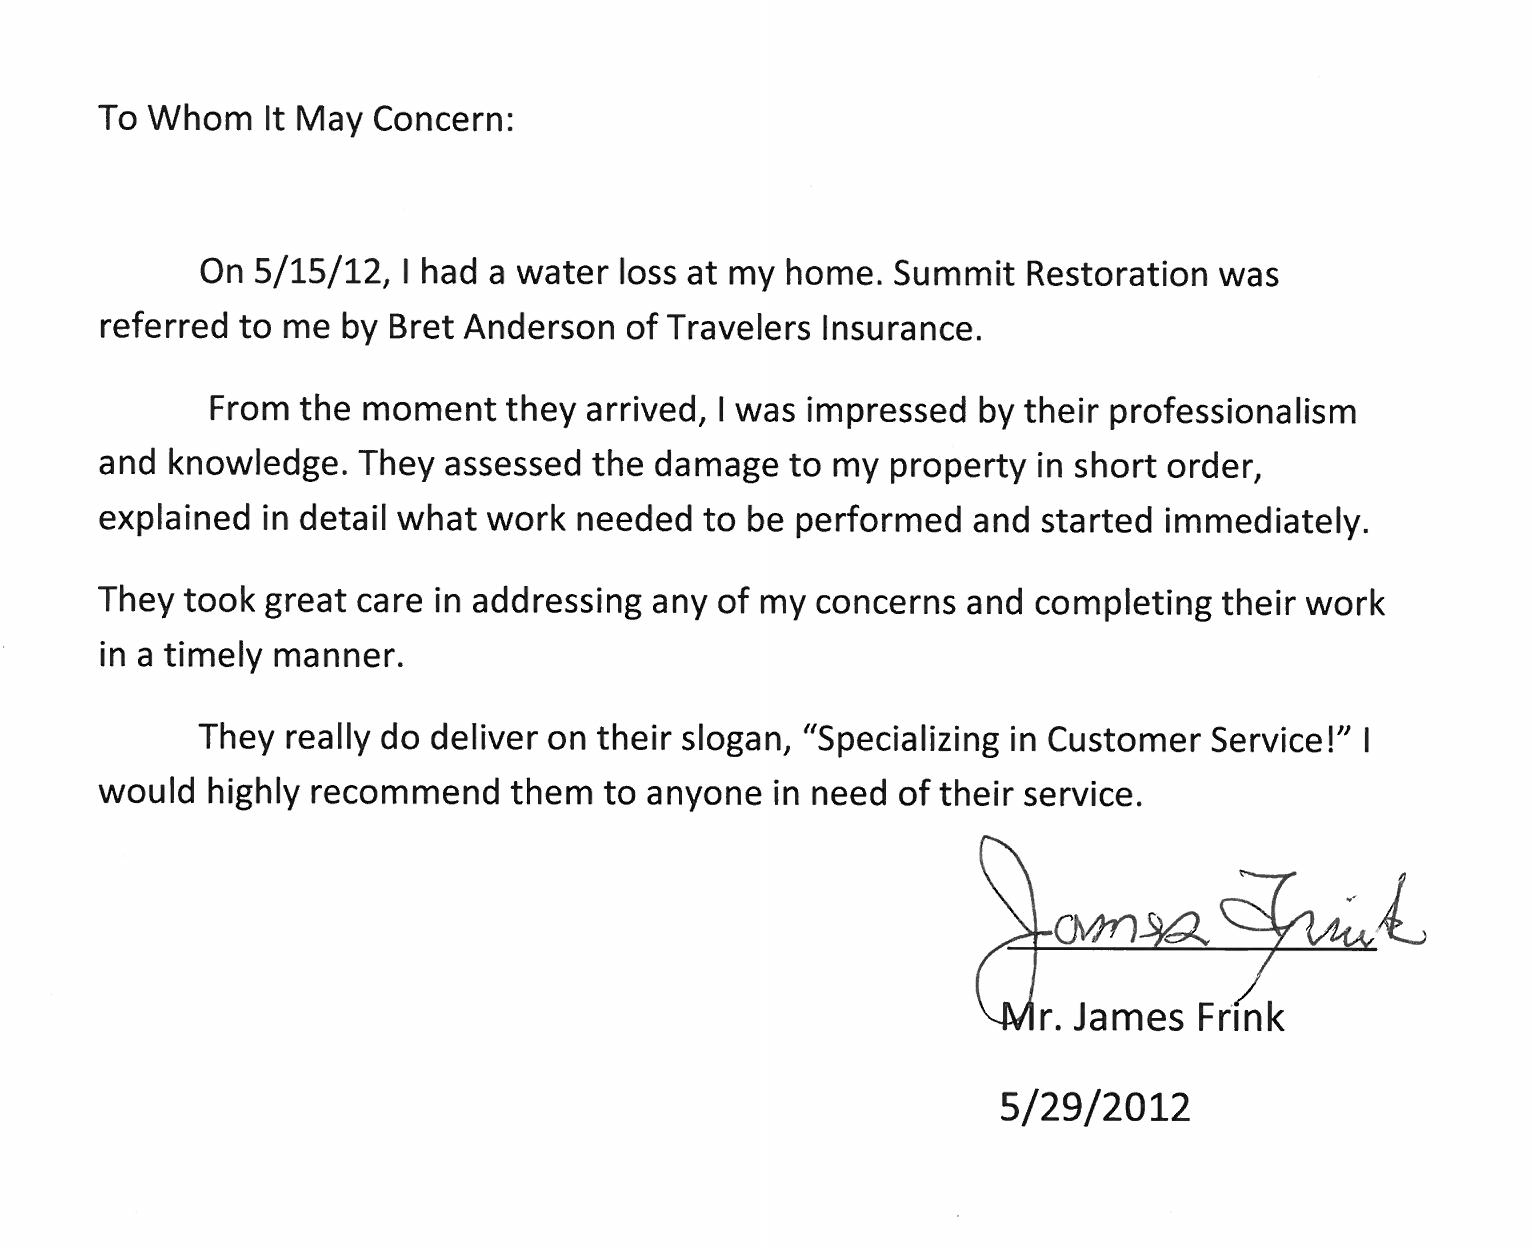 Testimonial from James Frink